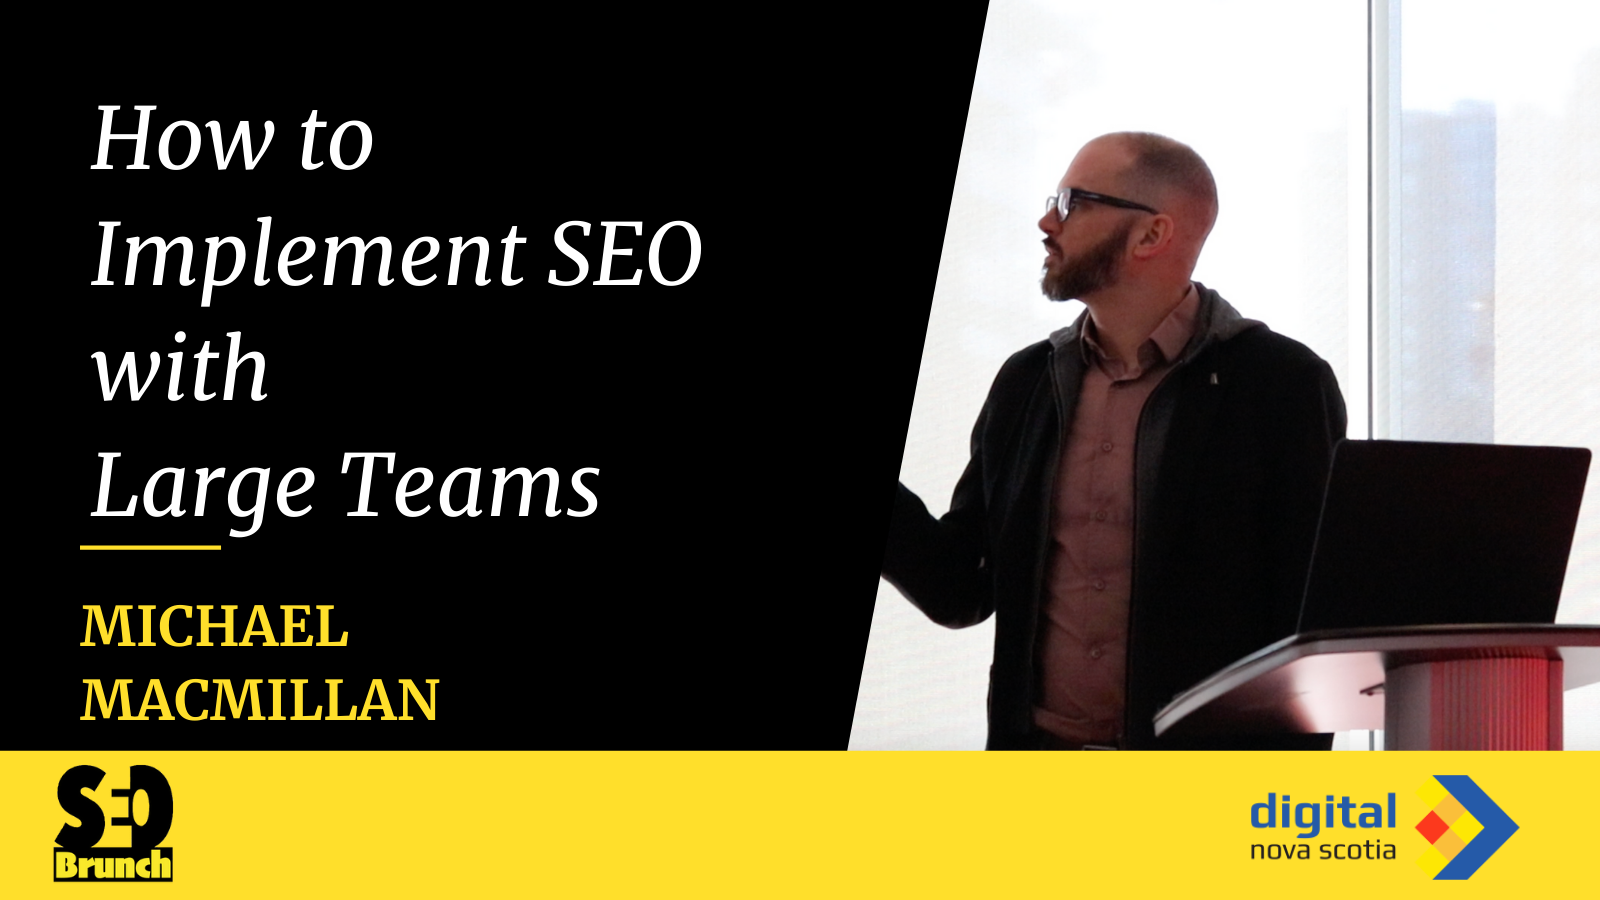 How to implement seo with large teams with michael macmillan